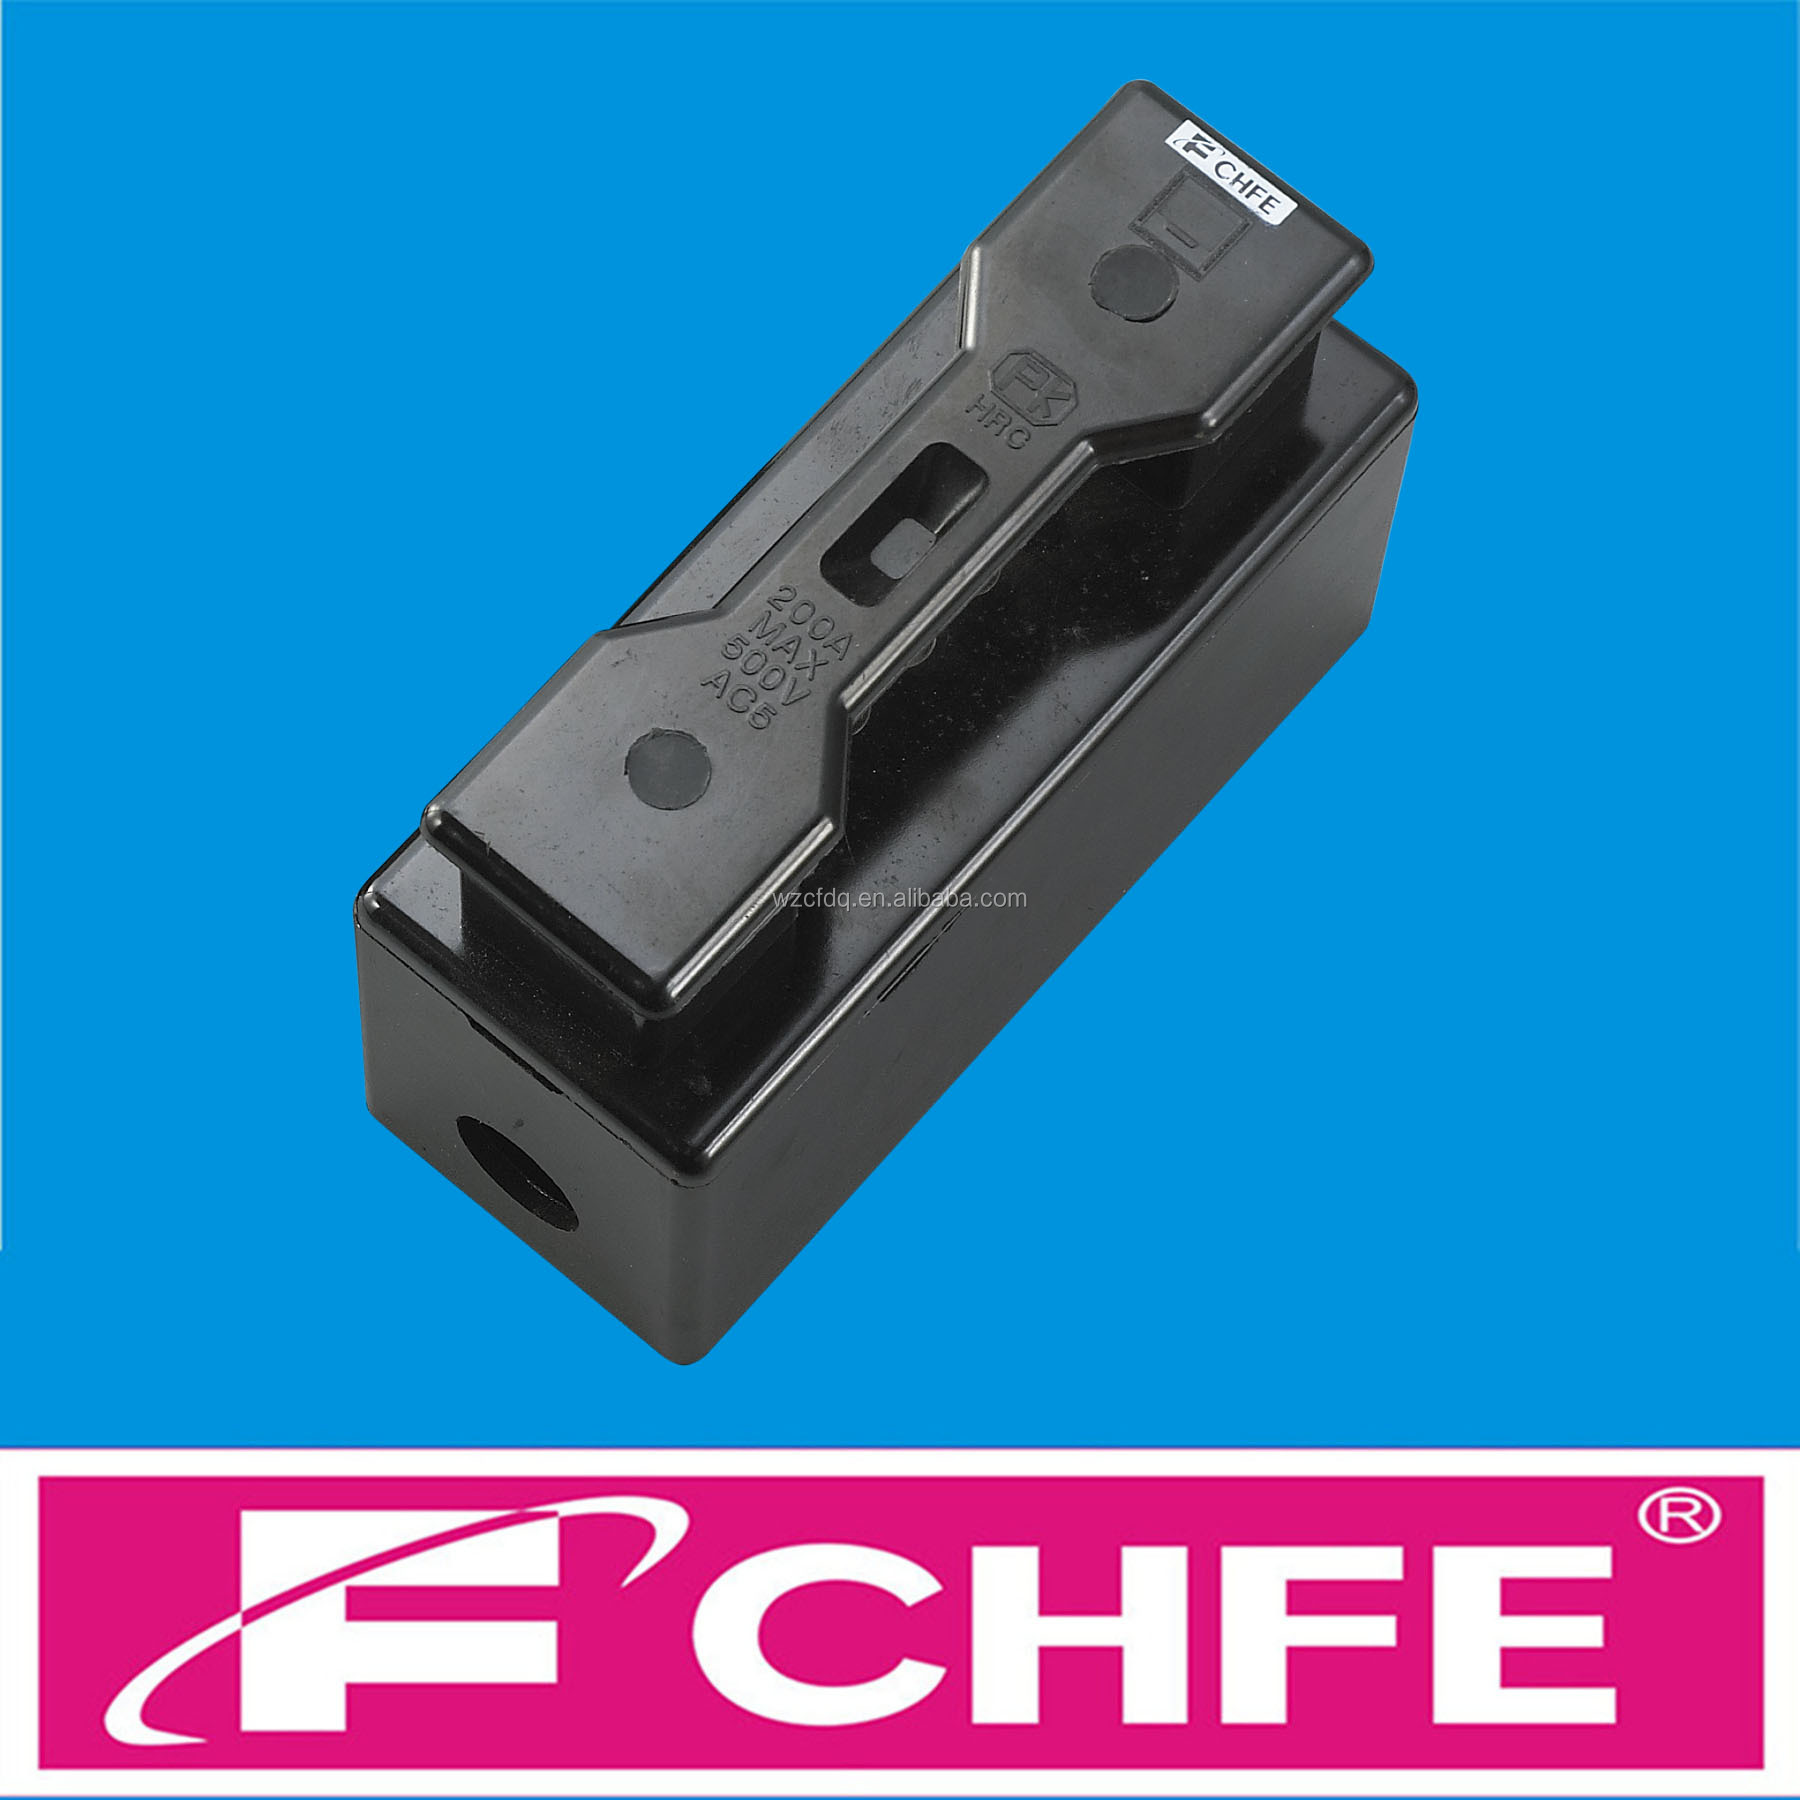 Plastic Fuse Box Wiring Library Cut Out Hrc 200a Black Cutout Buy Fusefuse